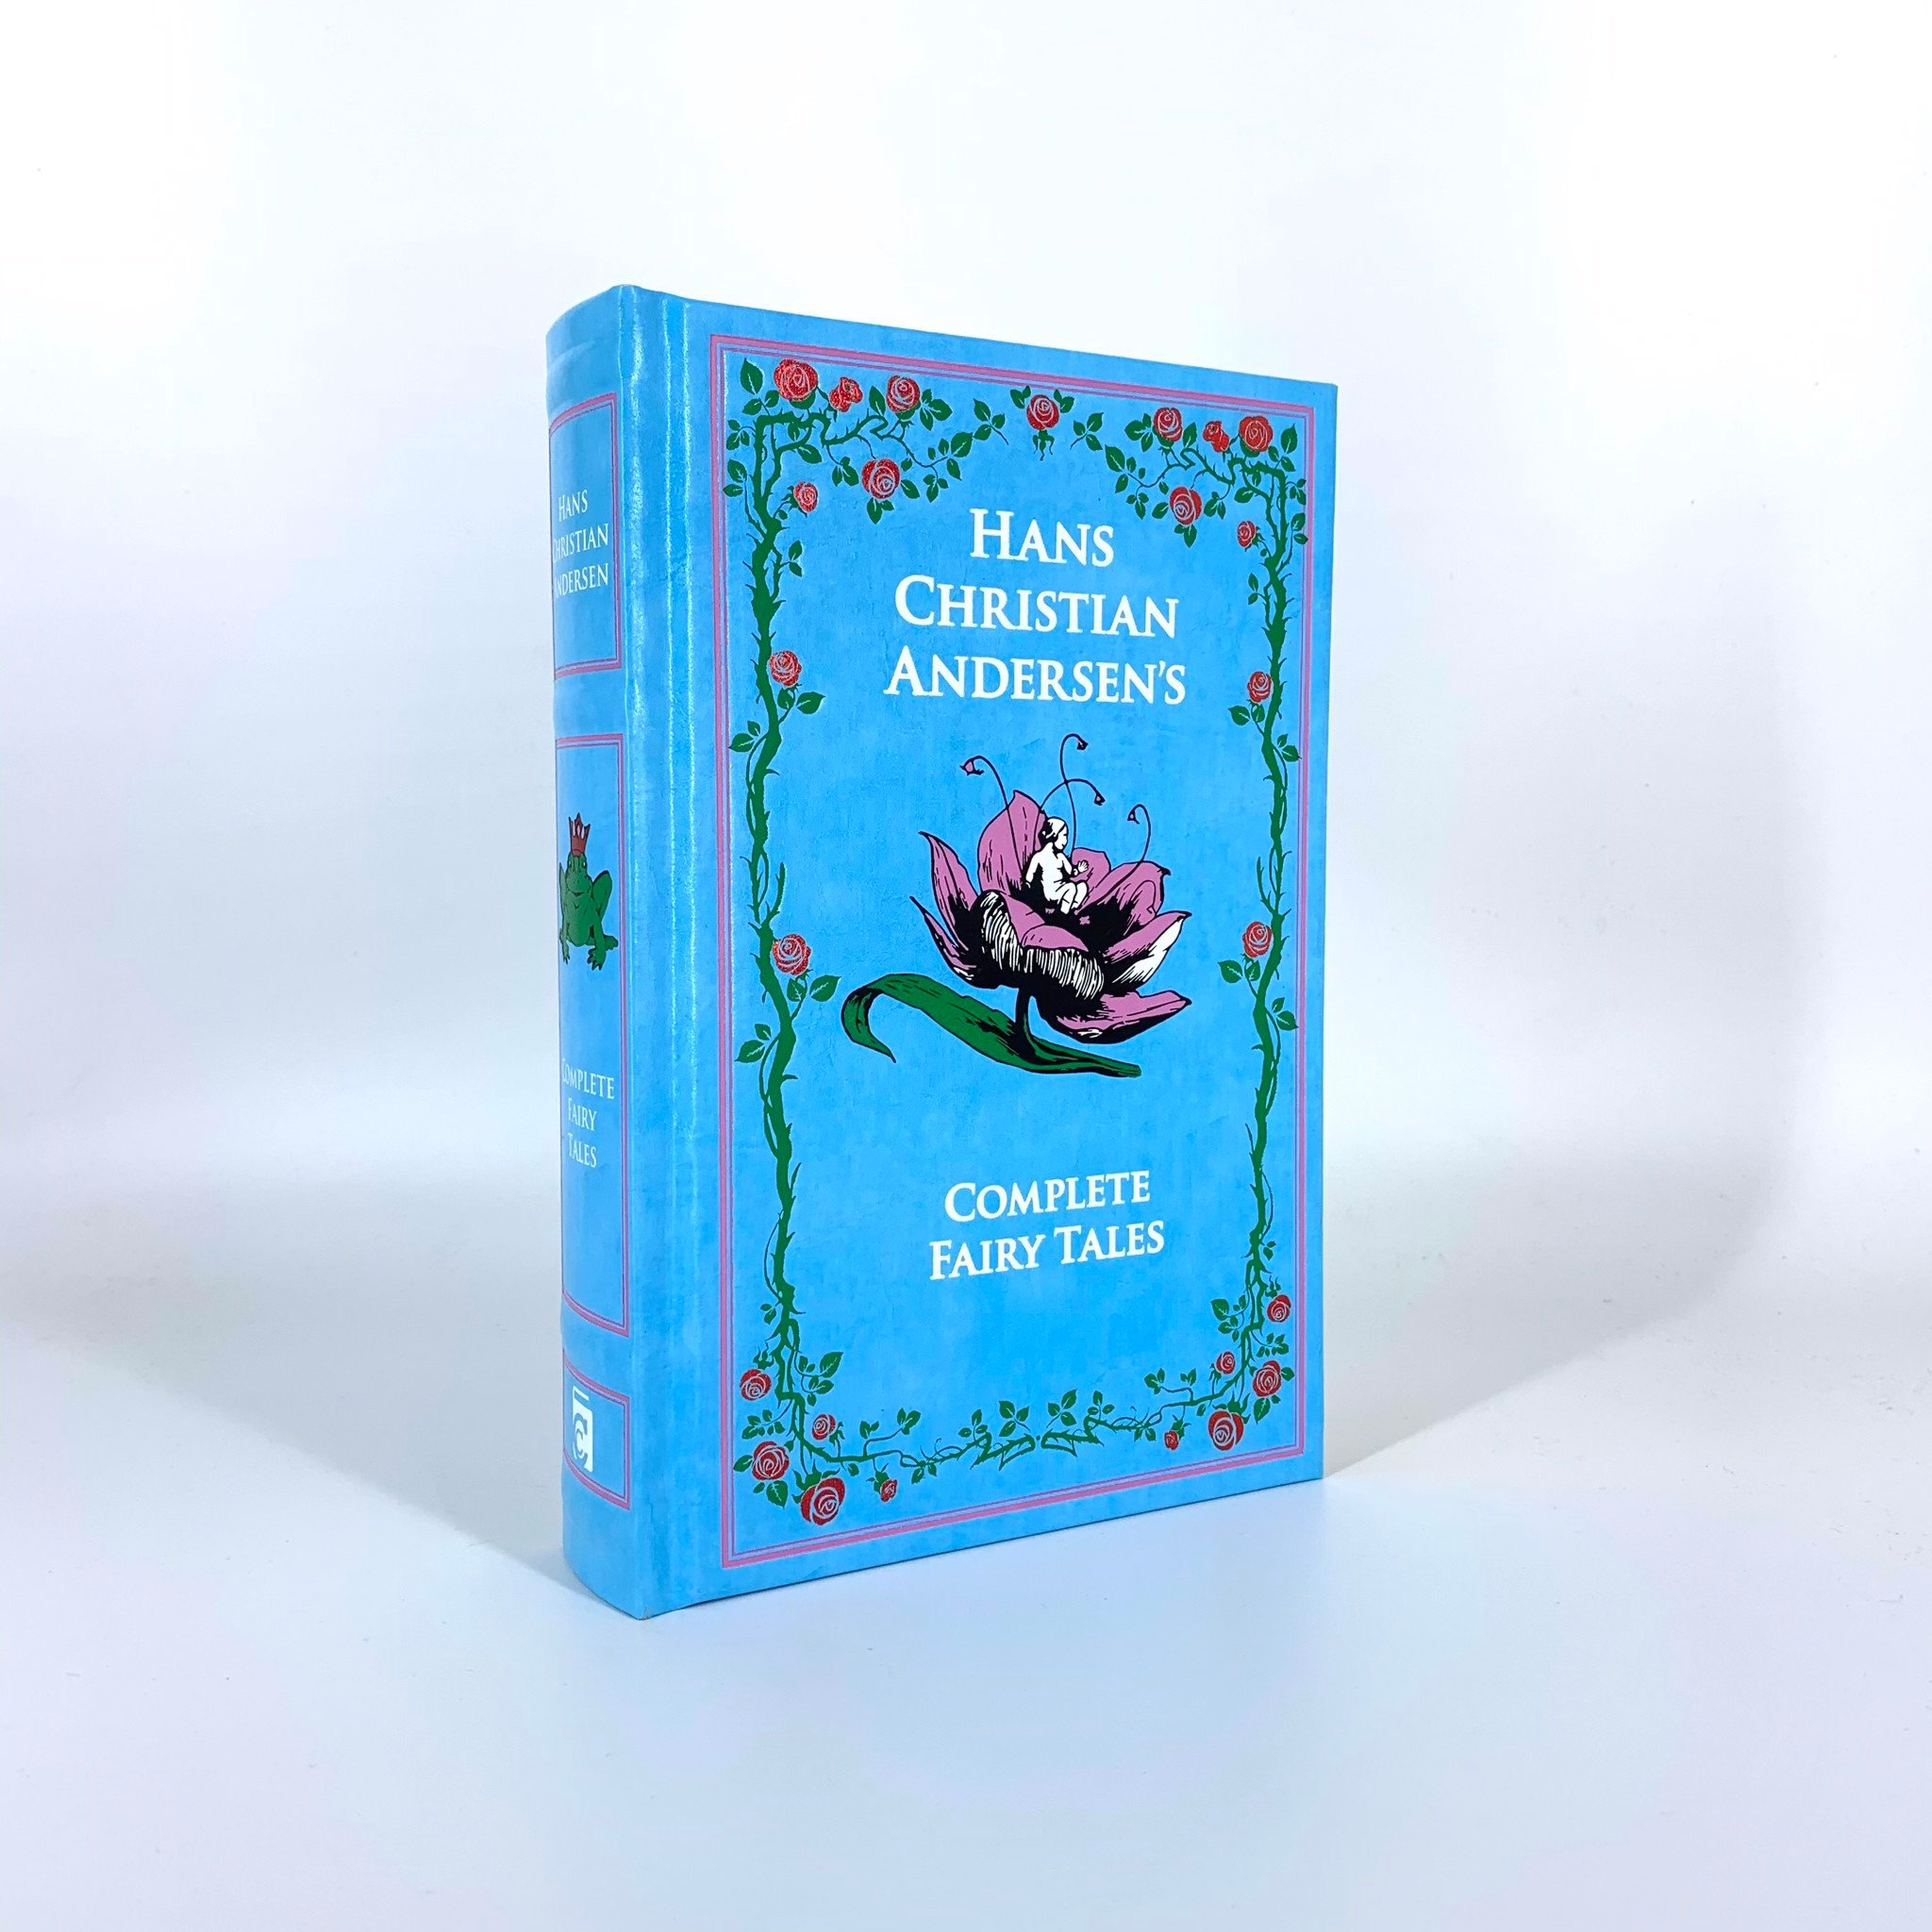 Hans Christian Andersen's Complete Fairy Tales_Hans Christian Andersen_9781626860995_Canterbury Classics